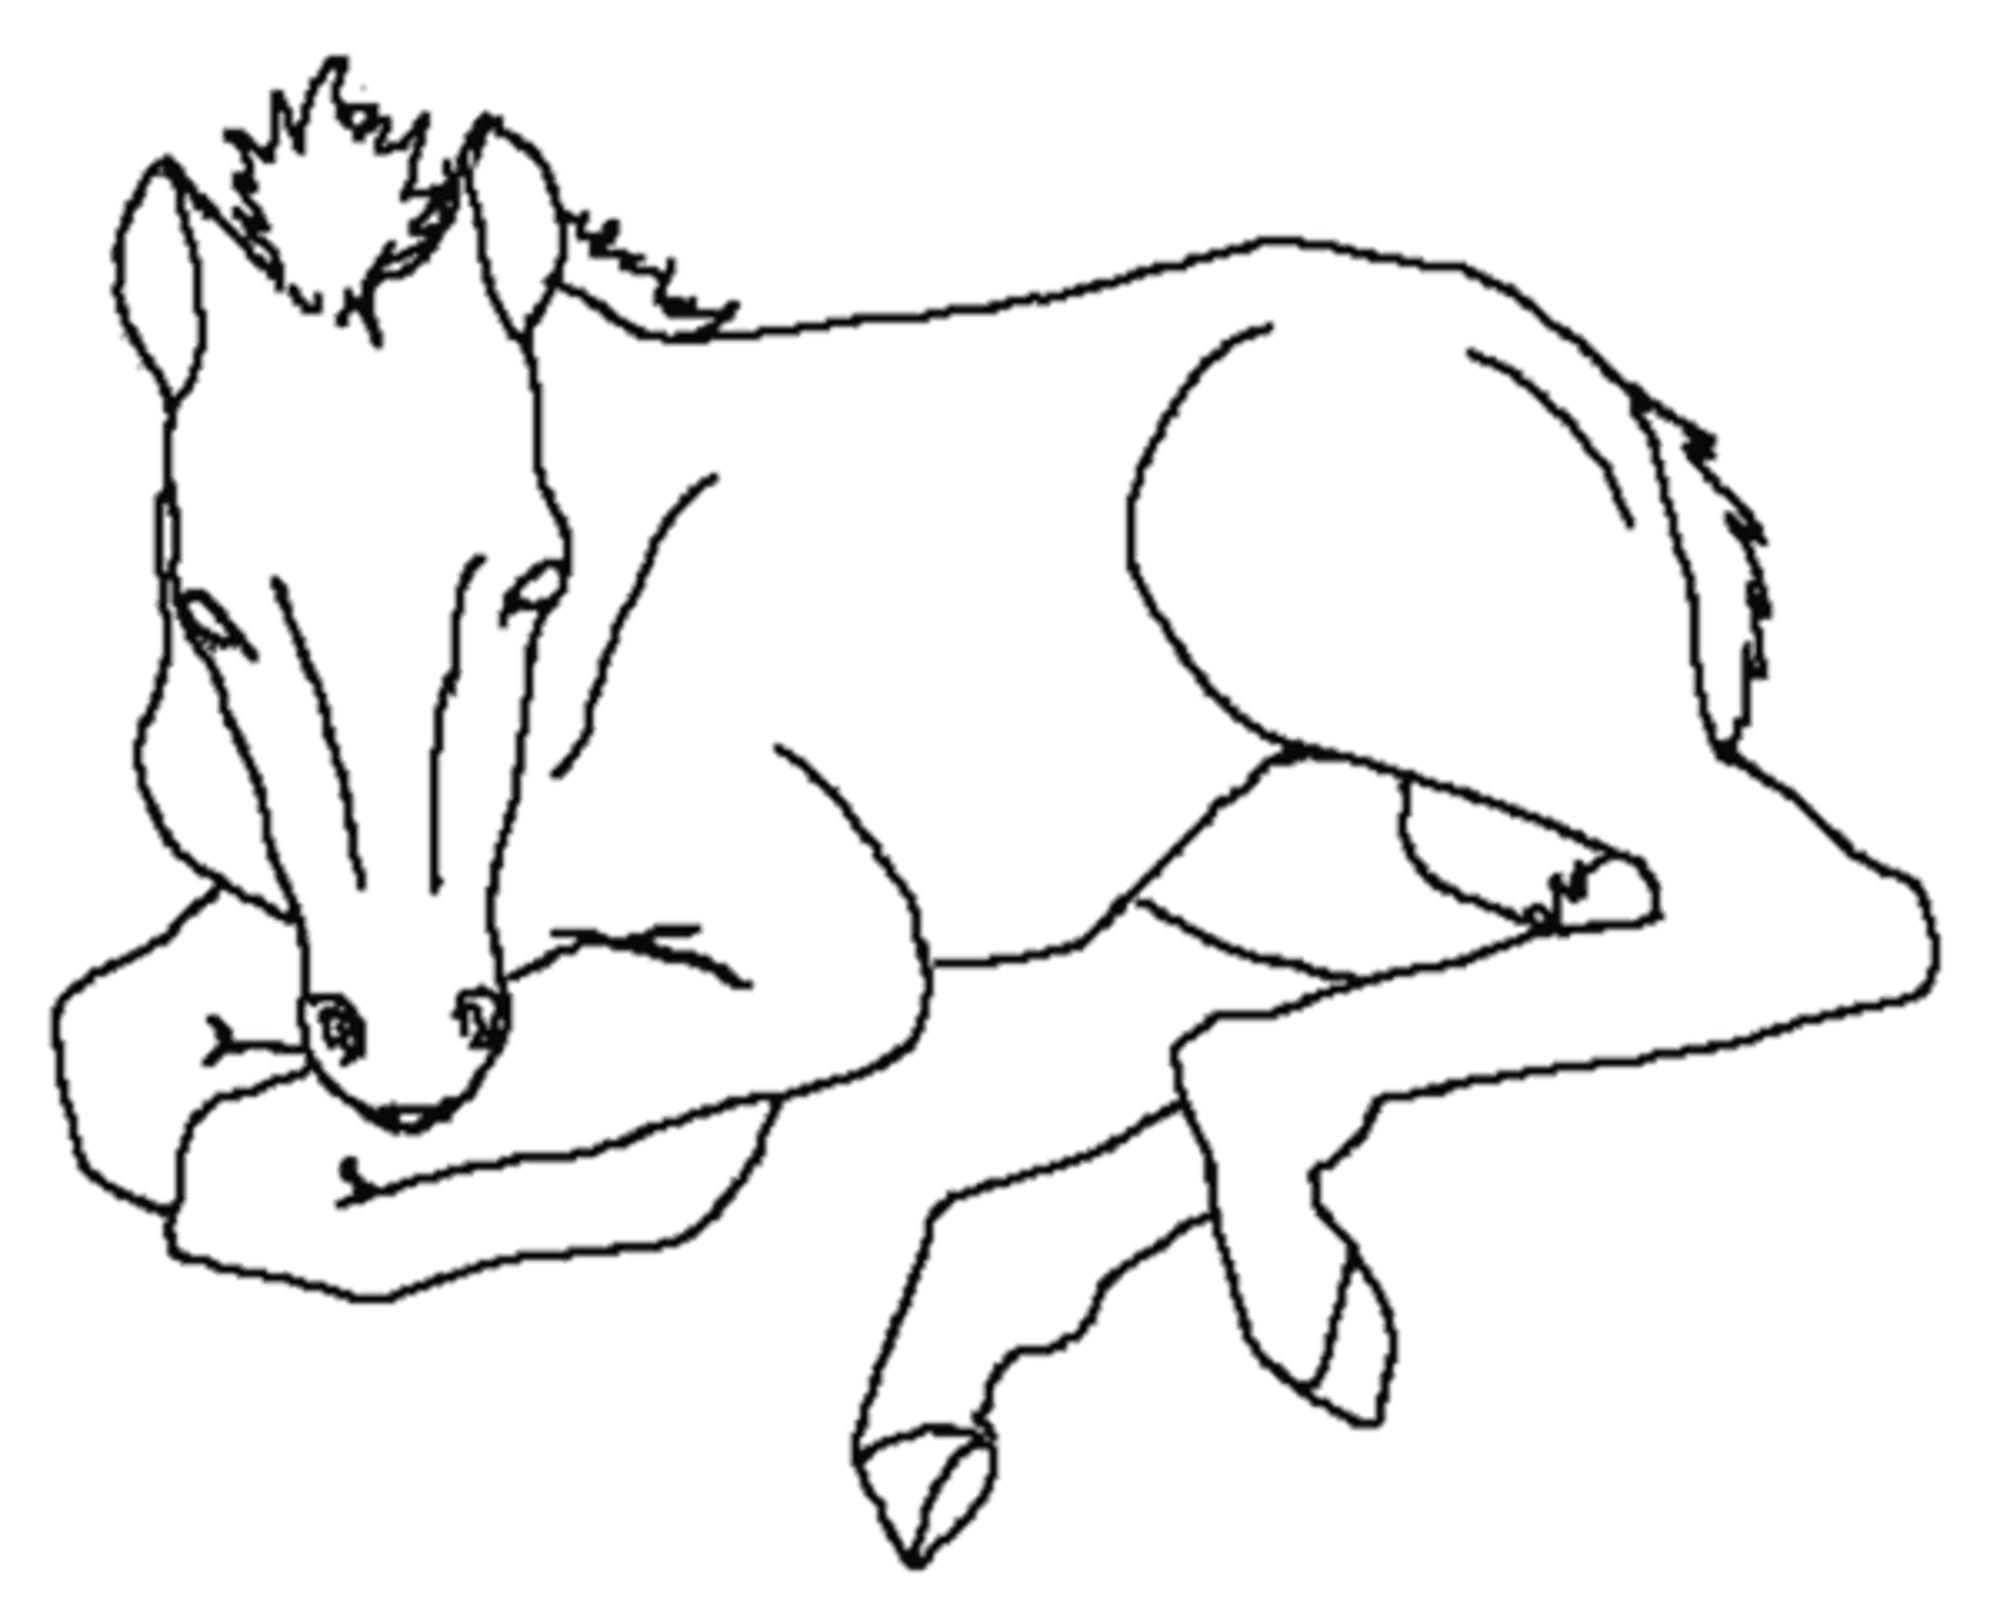 coloring sheet horse free horse coloring pages sheet coloring horse